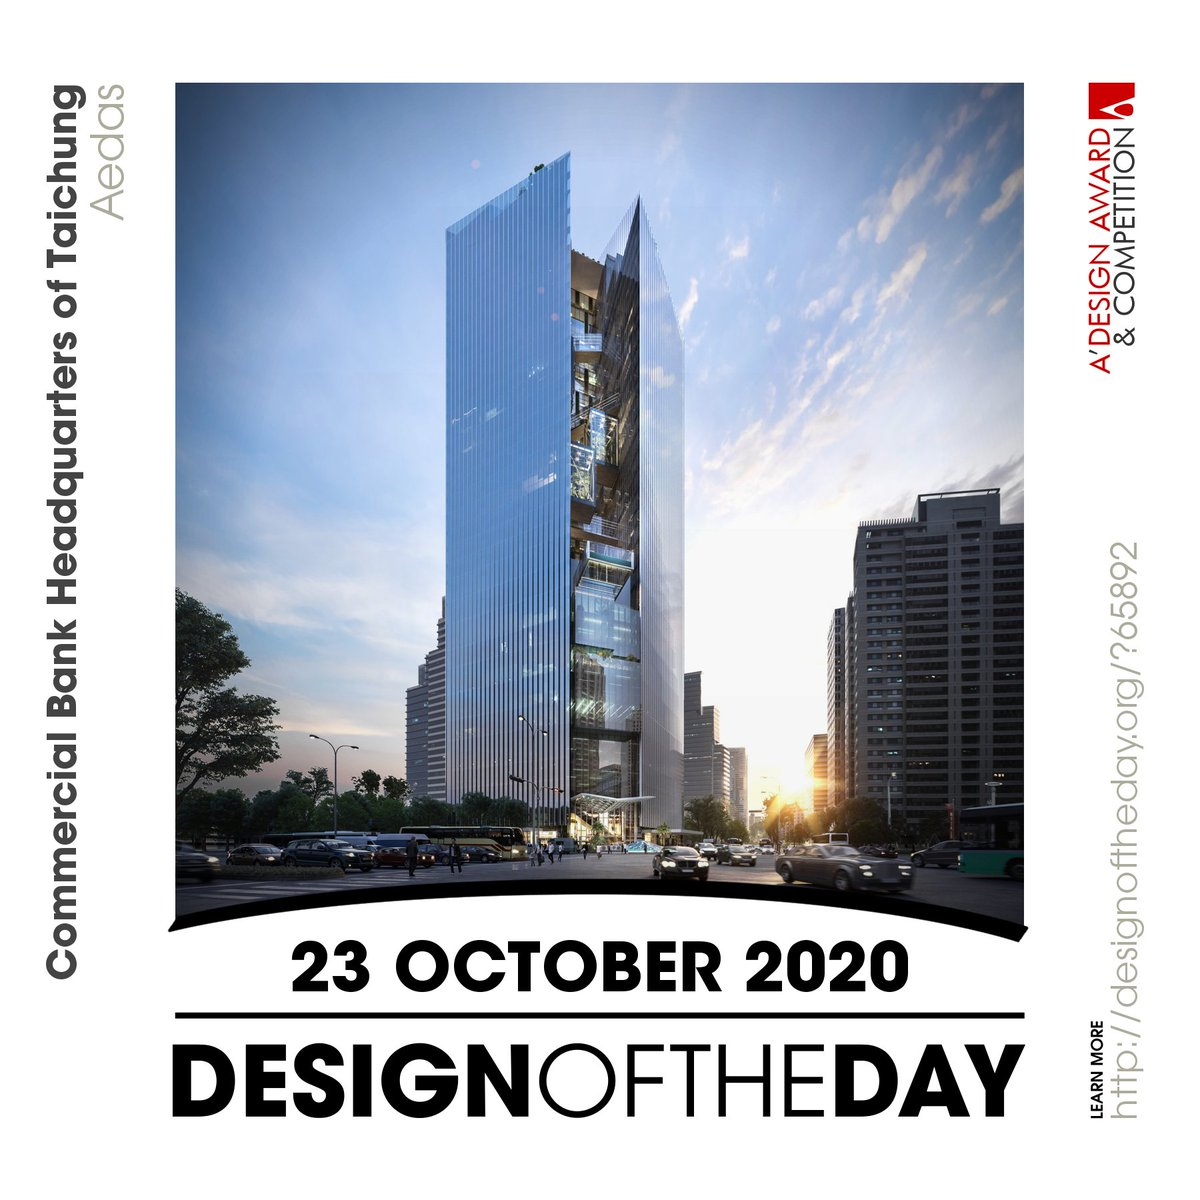 Congrats to Aedas, the creator behind the Design of the Day of 23 October 2020 - Headquarters of Taichung Commercial Bank HQ and Five Star Hotel. Check out this great work now. We are currently featuring it at https://t.co/T1owYPdGV2 #designoftheday https://t.co/v6wVfGEojx